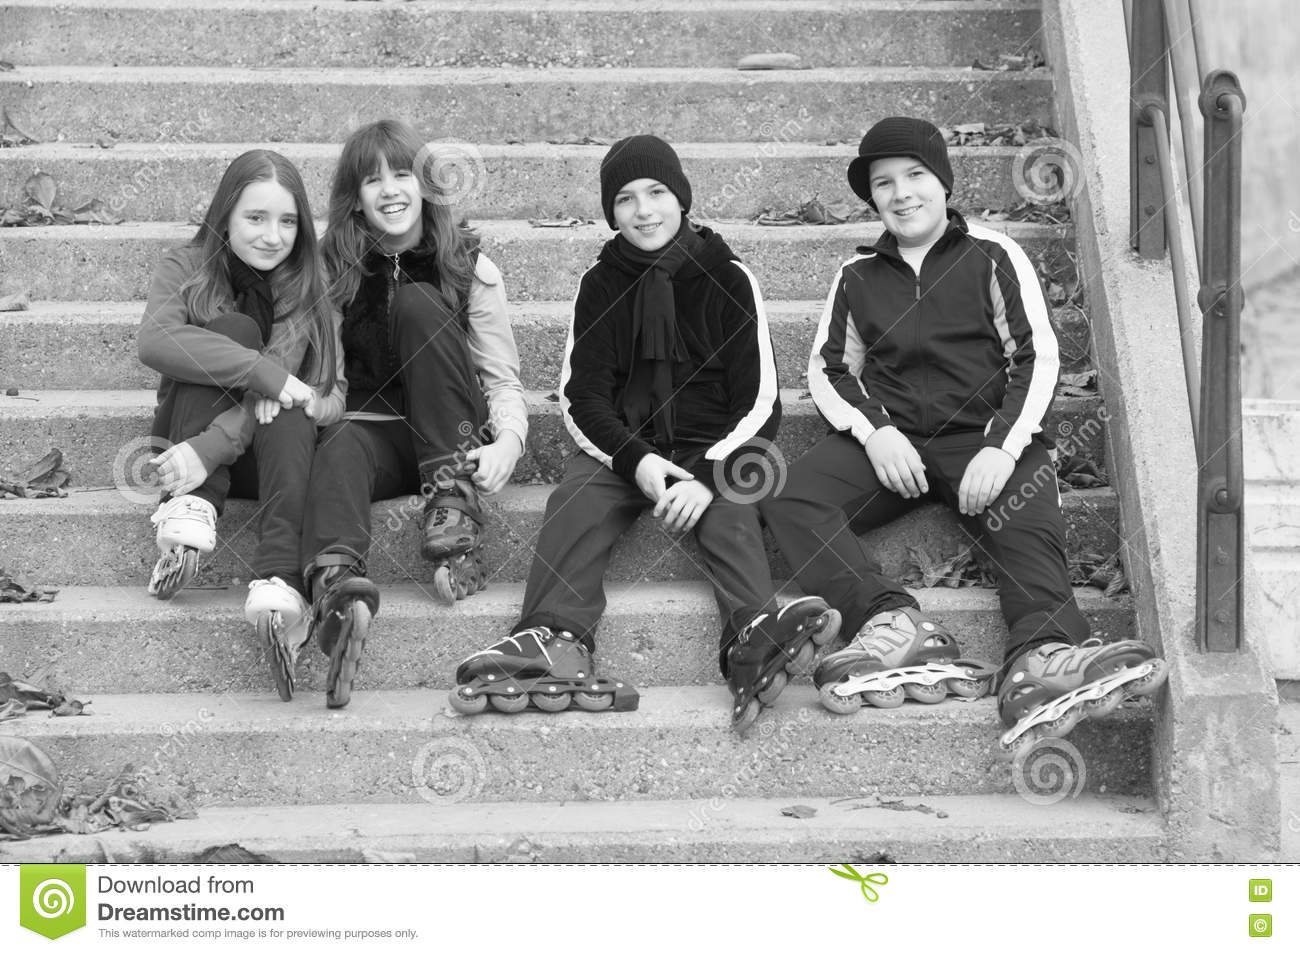 Teenage boys and girls in roller skates sitting on stairs